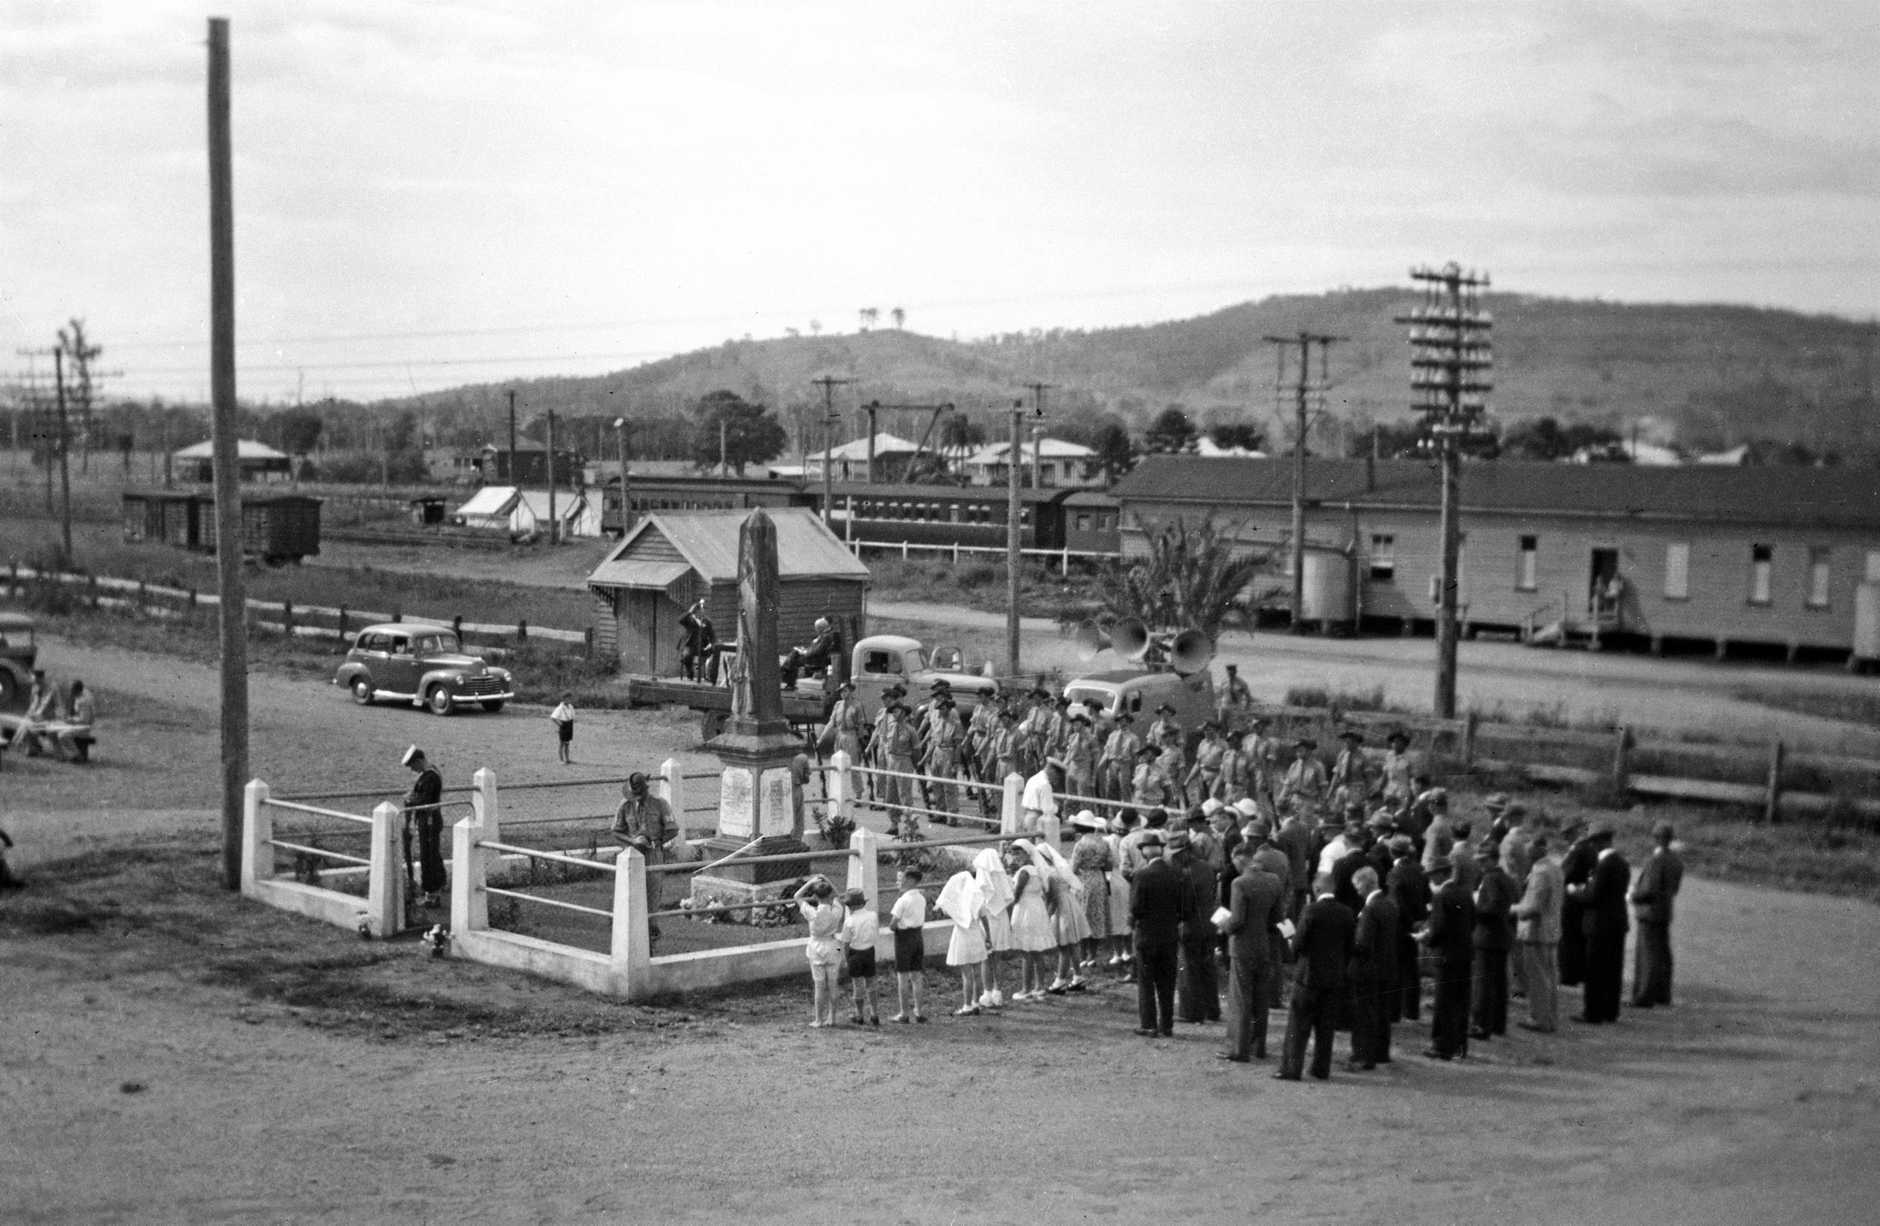 Anzac Day service at the War Memorial, Yandina, 1940s.